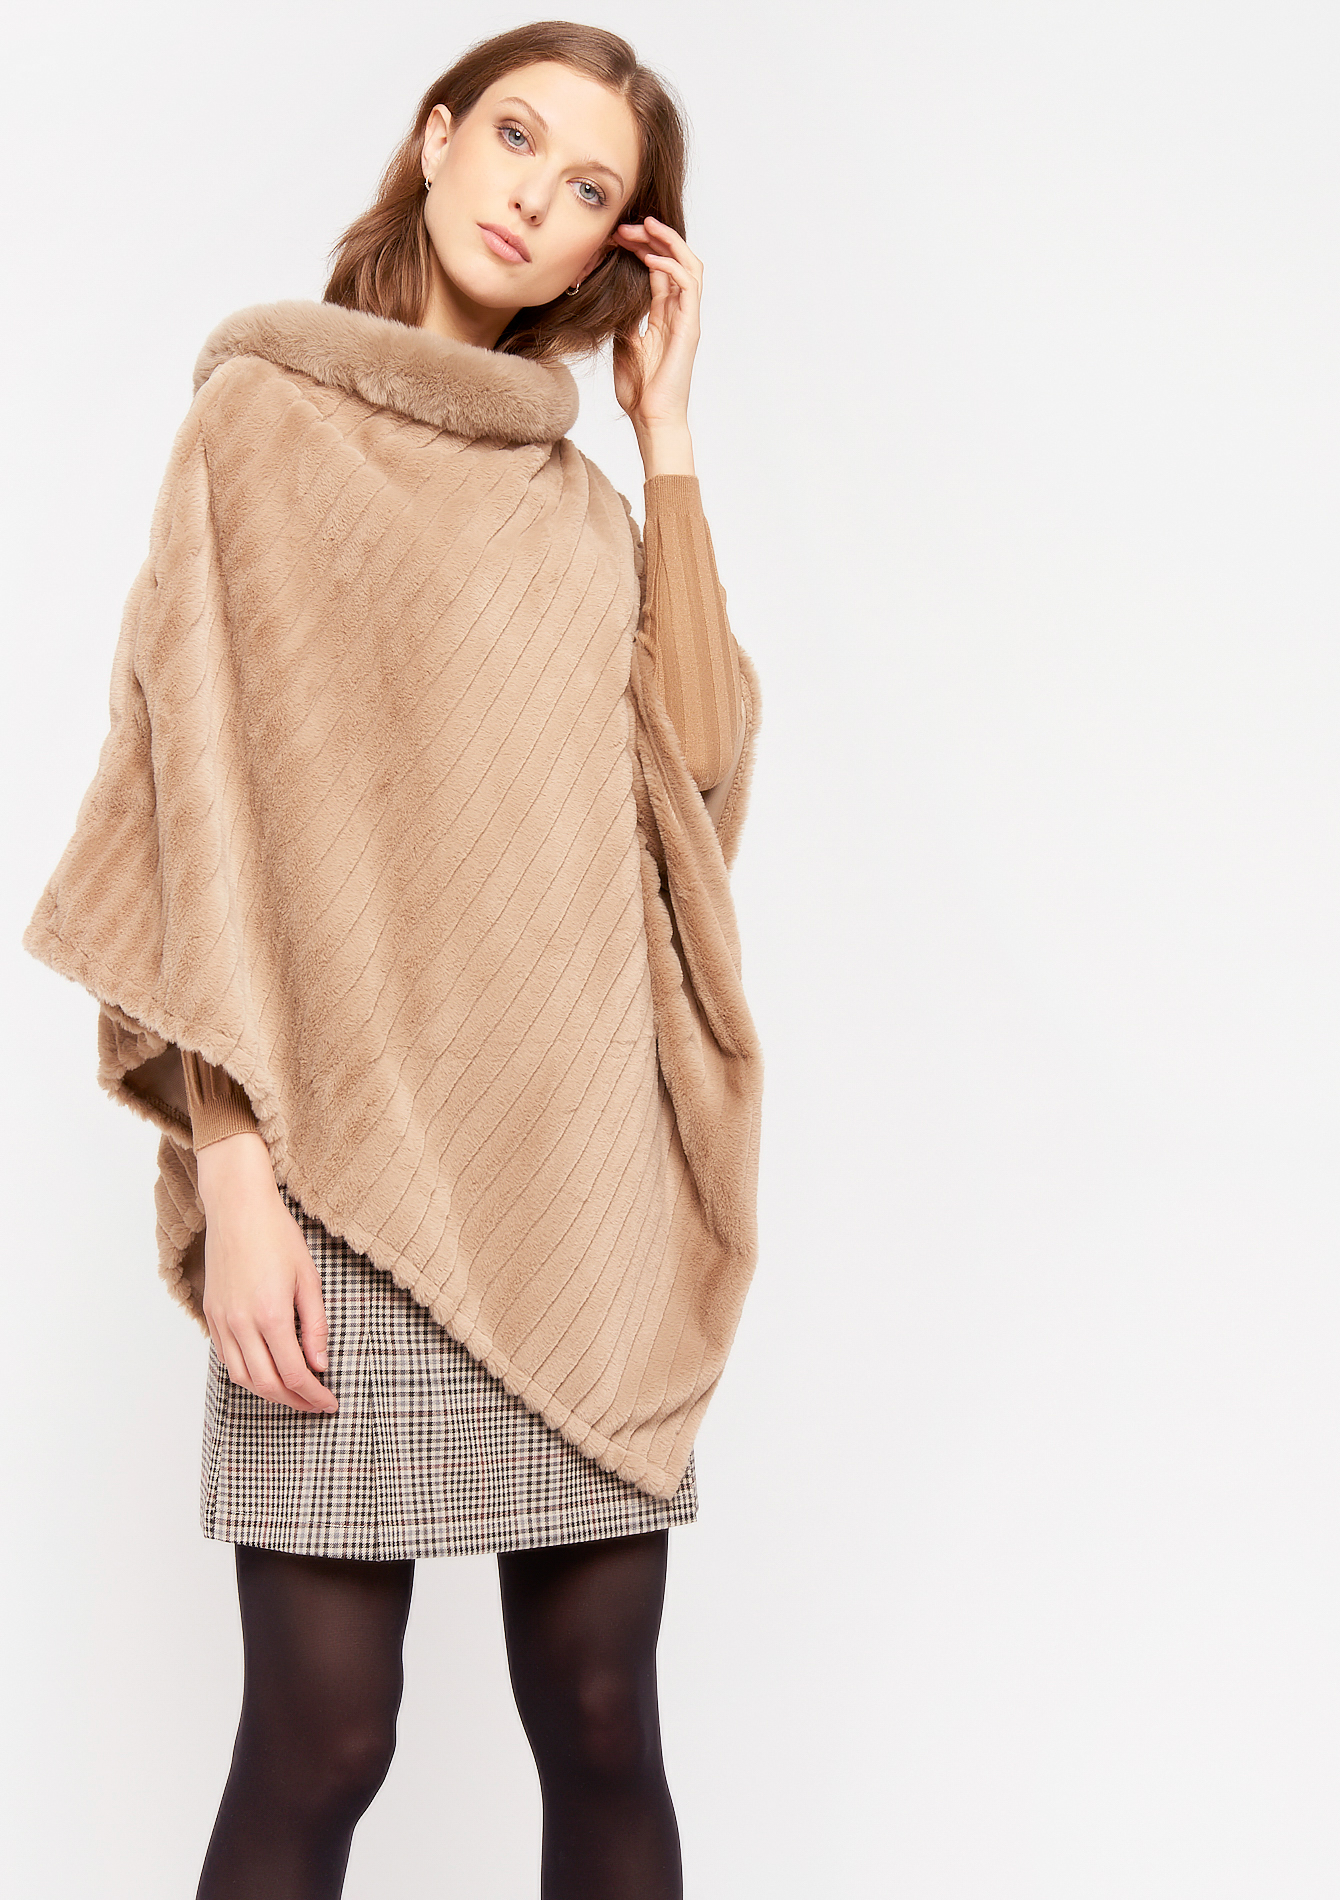 Poncho fausse fourrure - NATURAL BEIGE - 976436